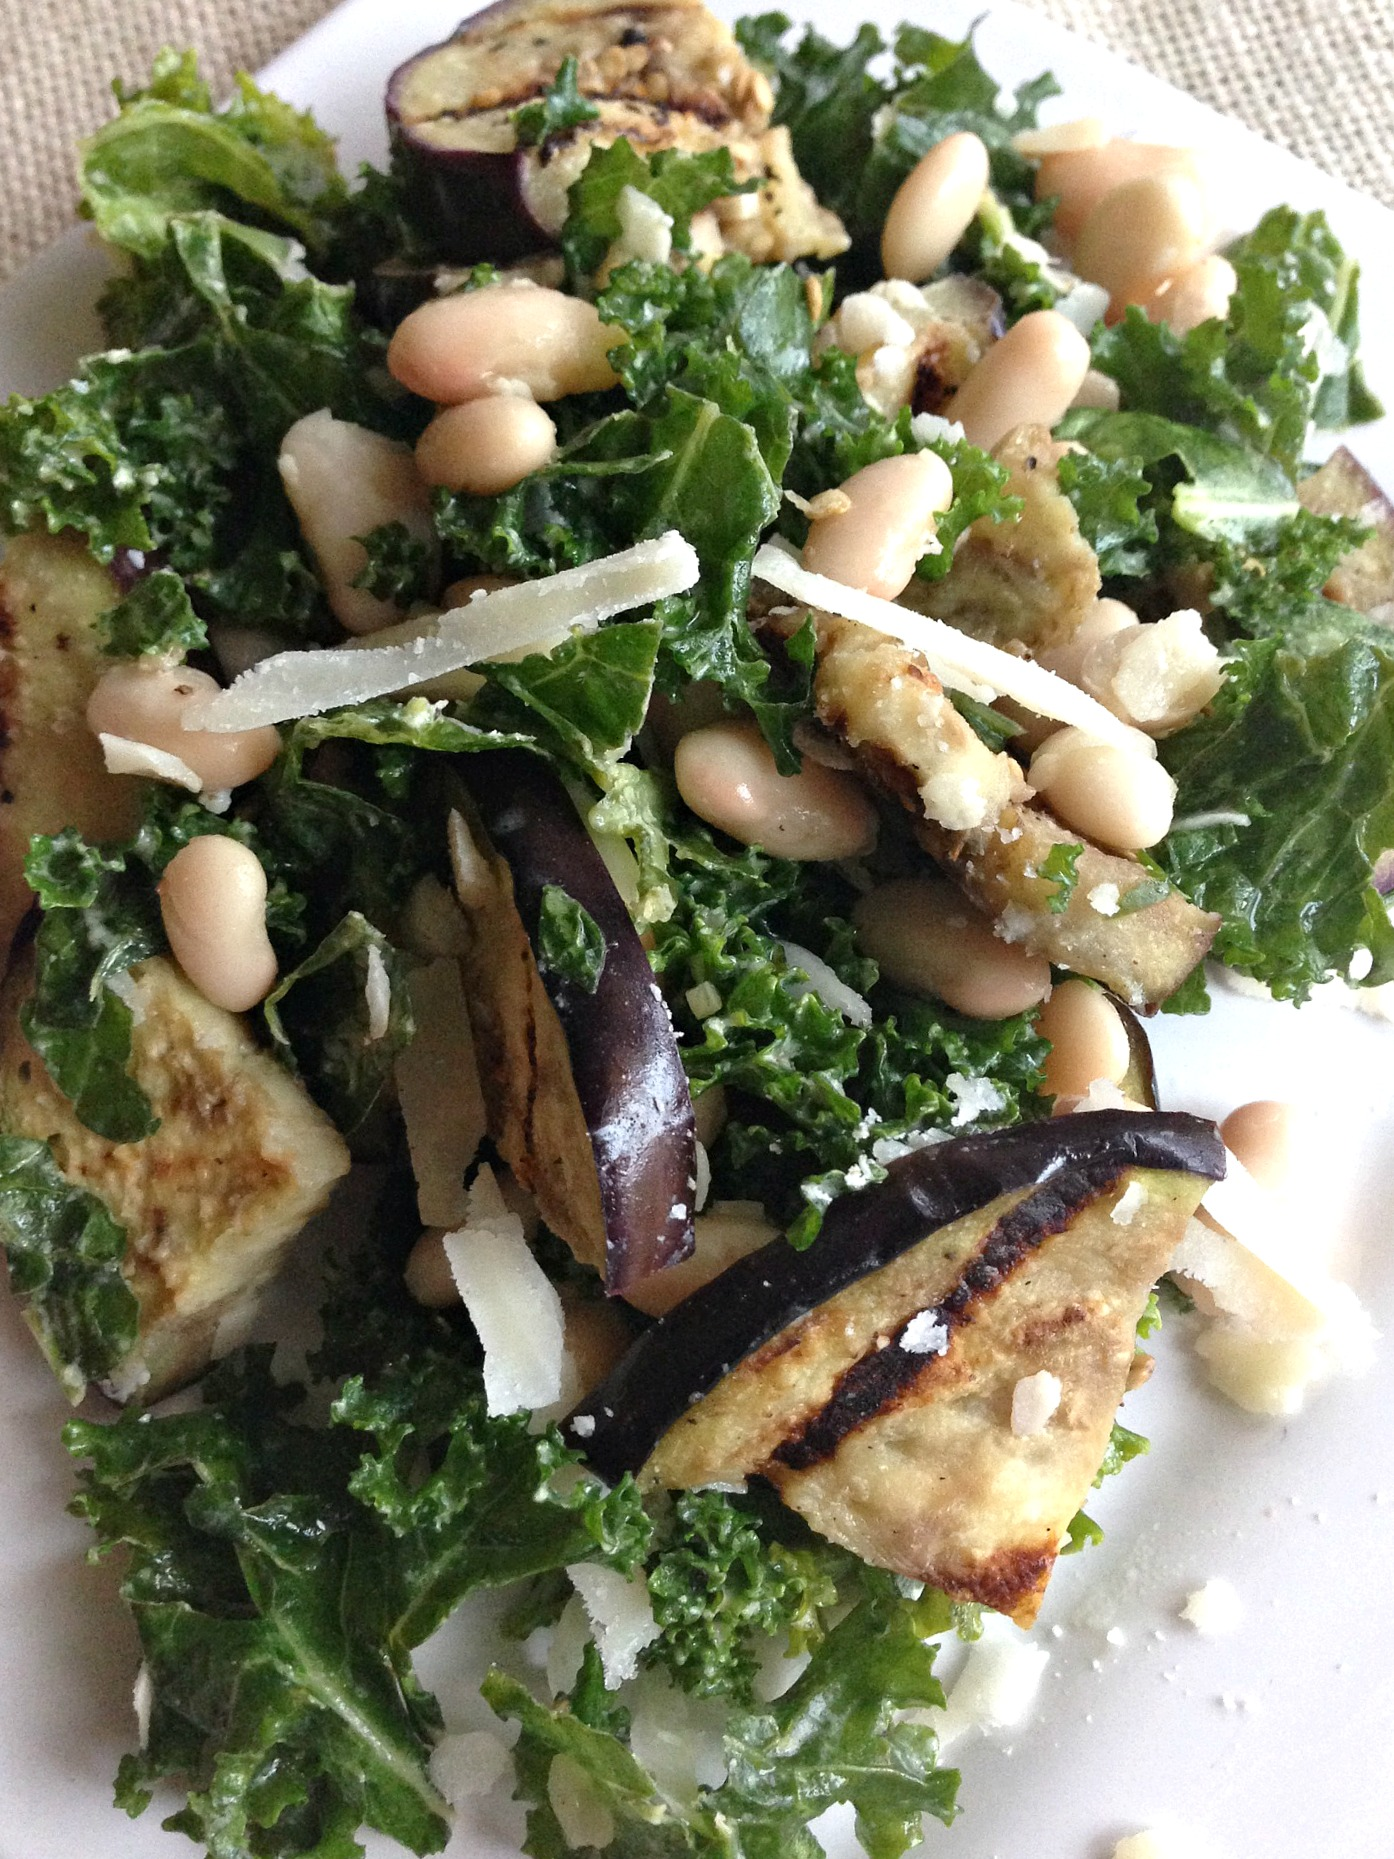 Eggplant and White Bean Kale Salad with Lemon Tahini Dressing